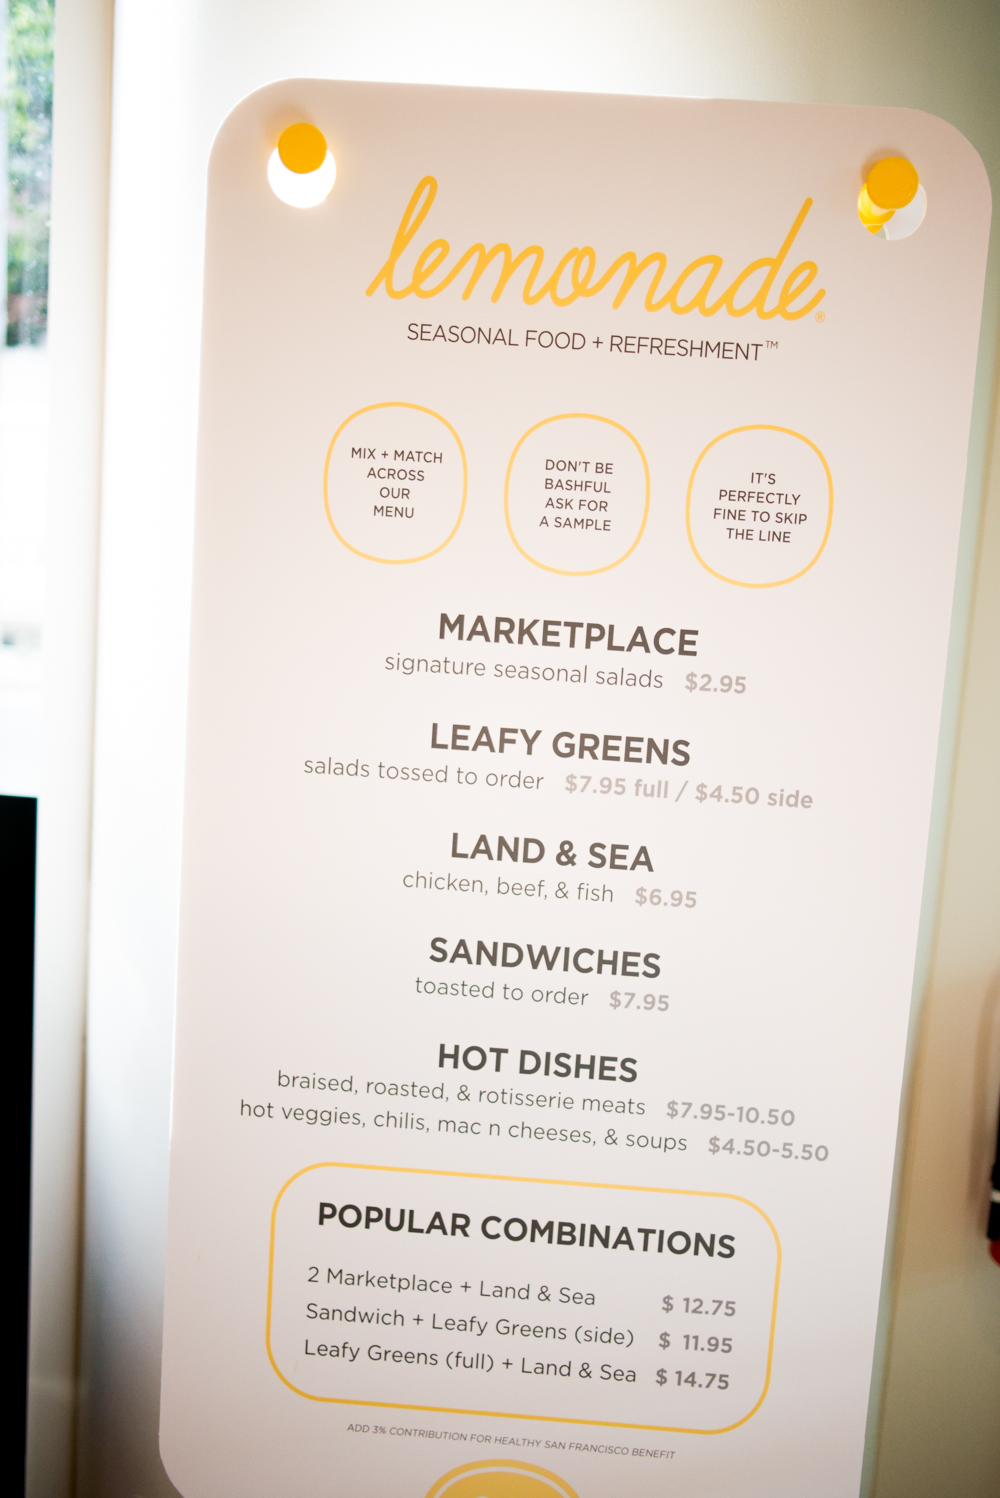 melissademata.com | Lemonade Restaurant, San Francisco